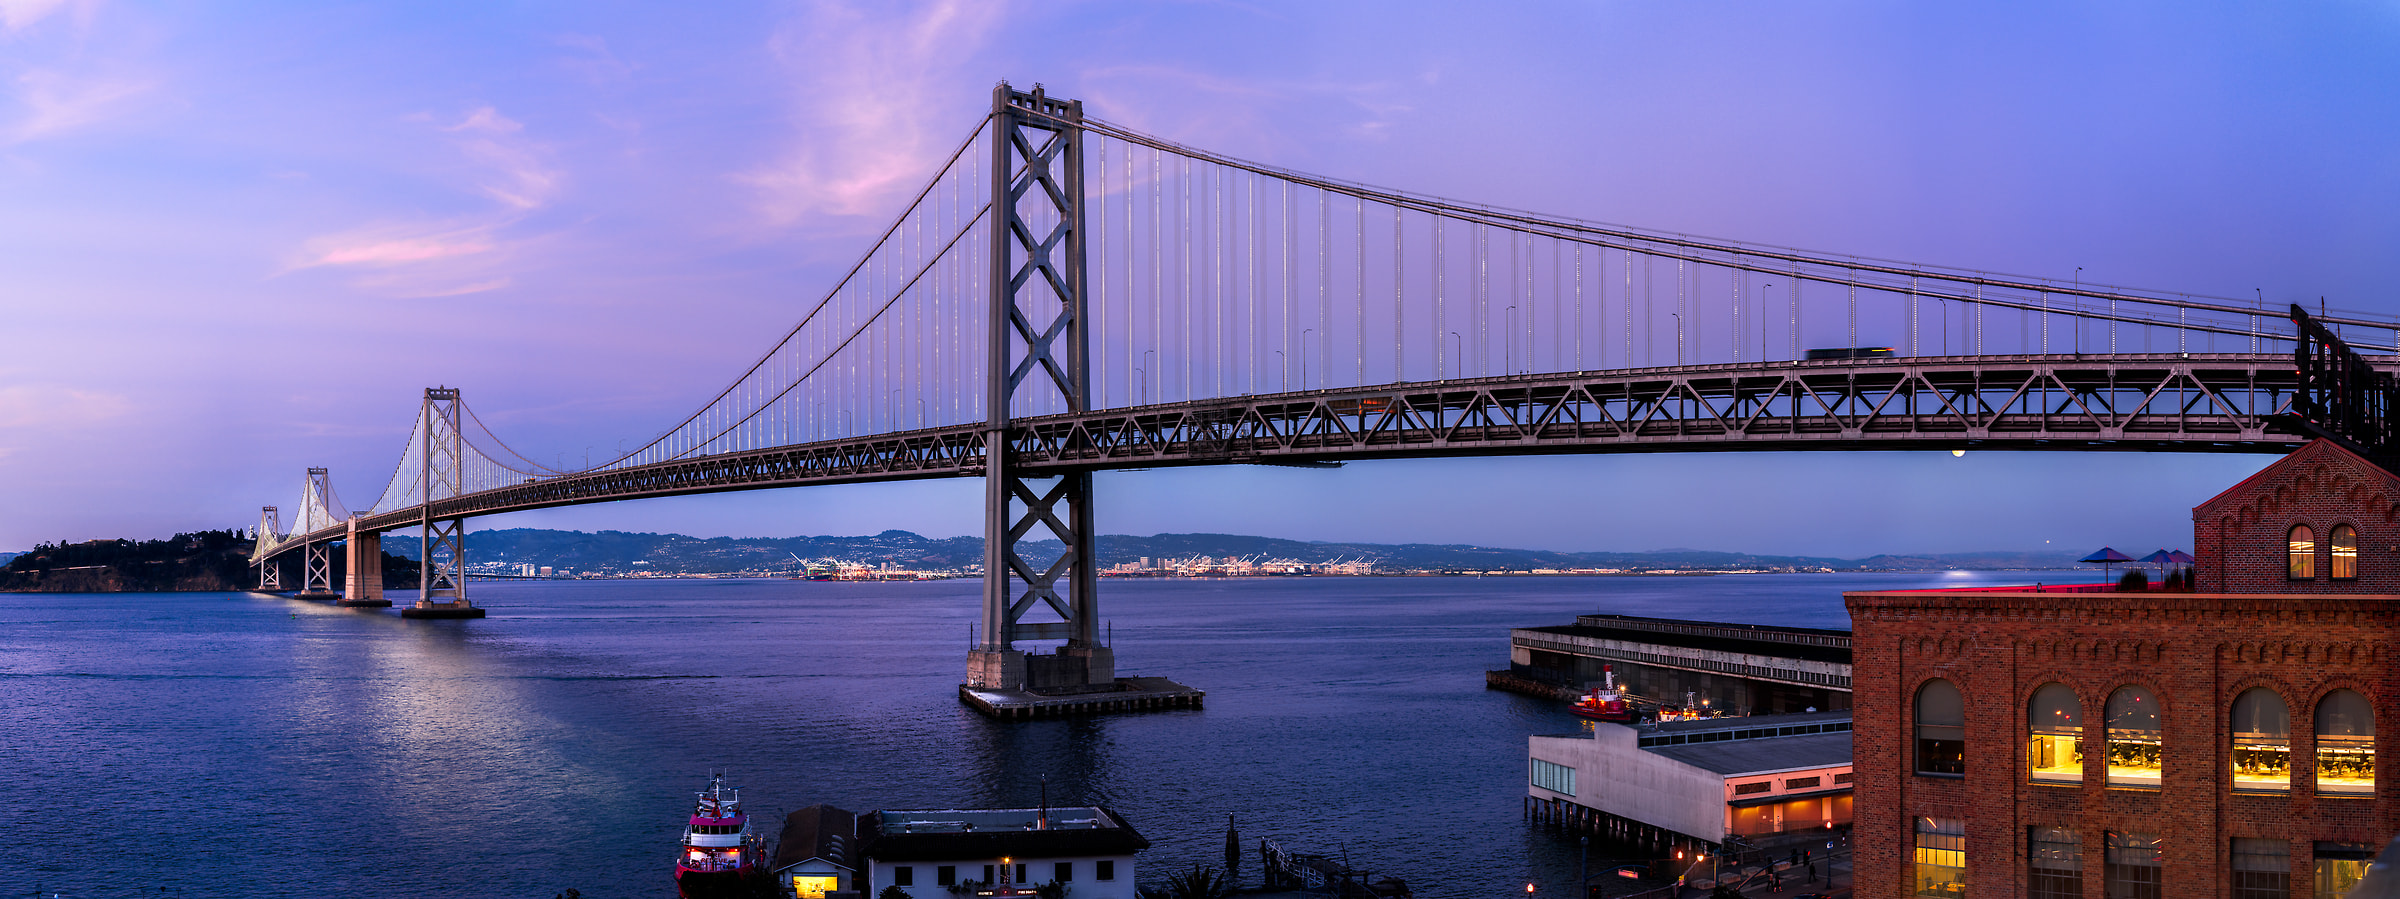 462 megapixels! A very high resolution, large-format VAST photo print of the San Francisco Bay Bridge at twilight; cityscape photograph created by Jim Tarpo in San Francisco, California